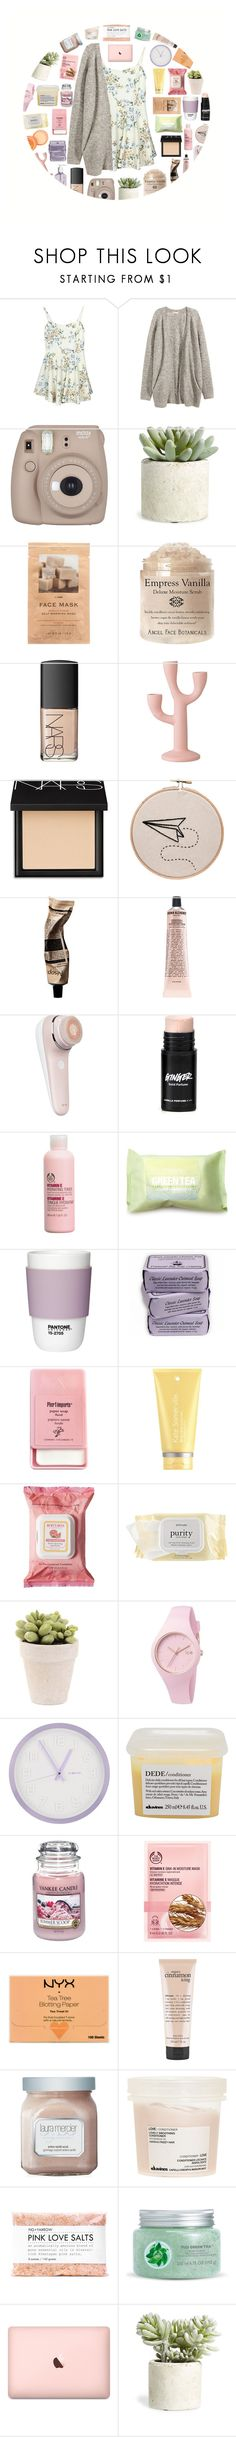 """stuck with nowhere to go"" by defying-gravity-xxx ❤ liked on Polyvore featuring H&M, Fujifilm, Allstate Floral, NARS Cosmetics, Bloomingville, Aromatique, Grown Alchemist, The Body Shop, Forever 21 and Pantone"